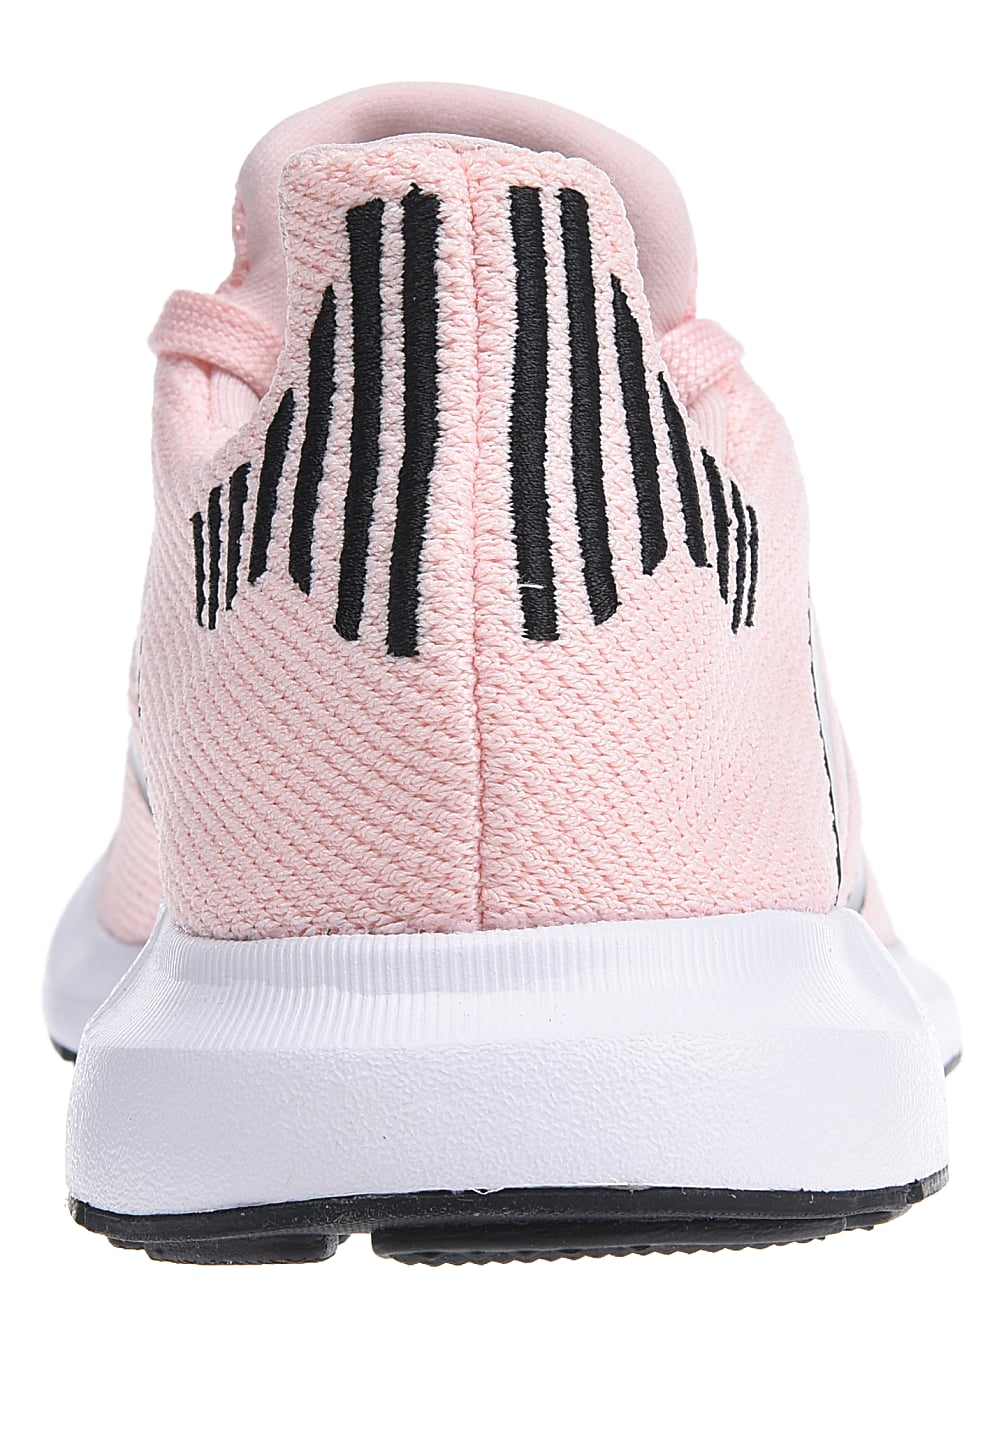 adidas Originals Swift Run Sneaker Pink